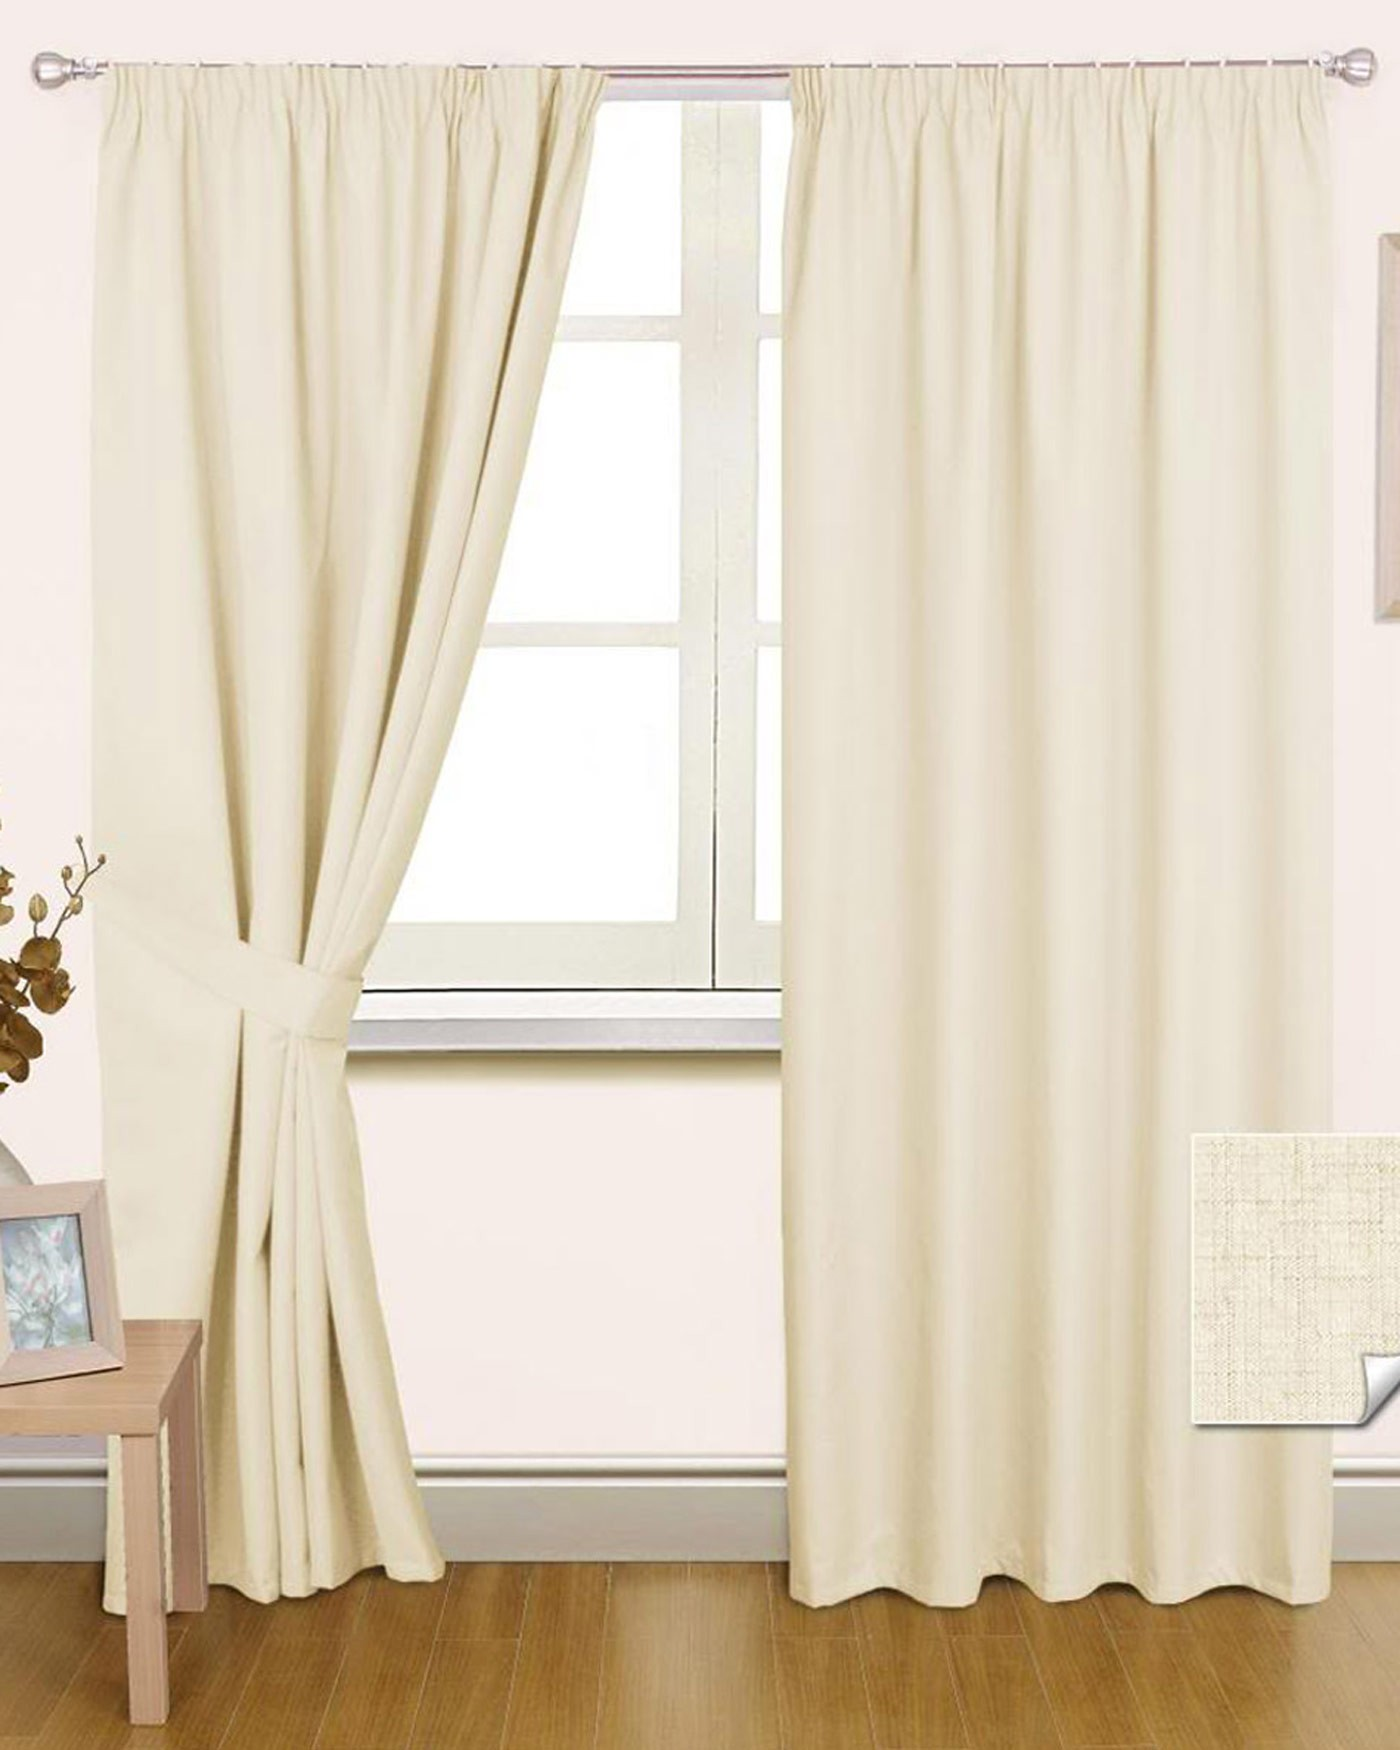 Drapes for Boys Room | Ruffle Blackout Curtains | Pottery Barn Ruffle Curtains